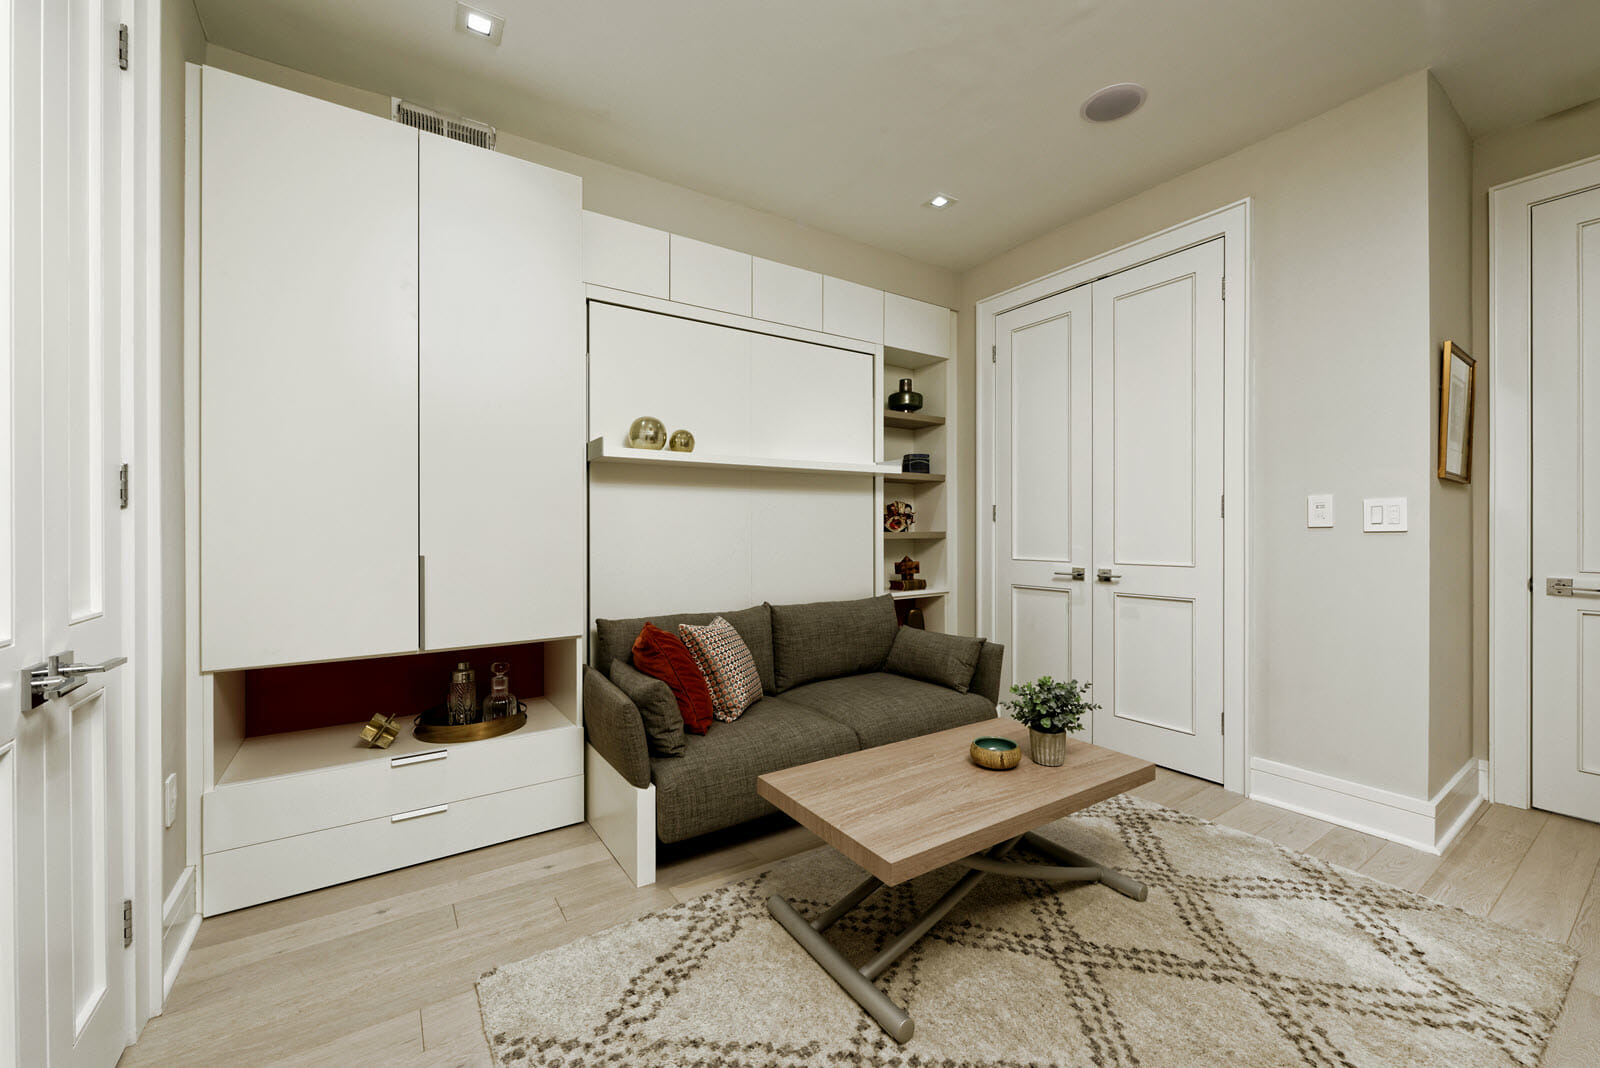 The Nuovoliola wall bed with sofa adds to this room's functionality without cluttering it. Designed by Theresa Boland.